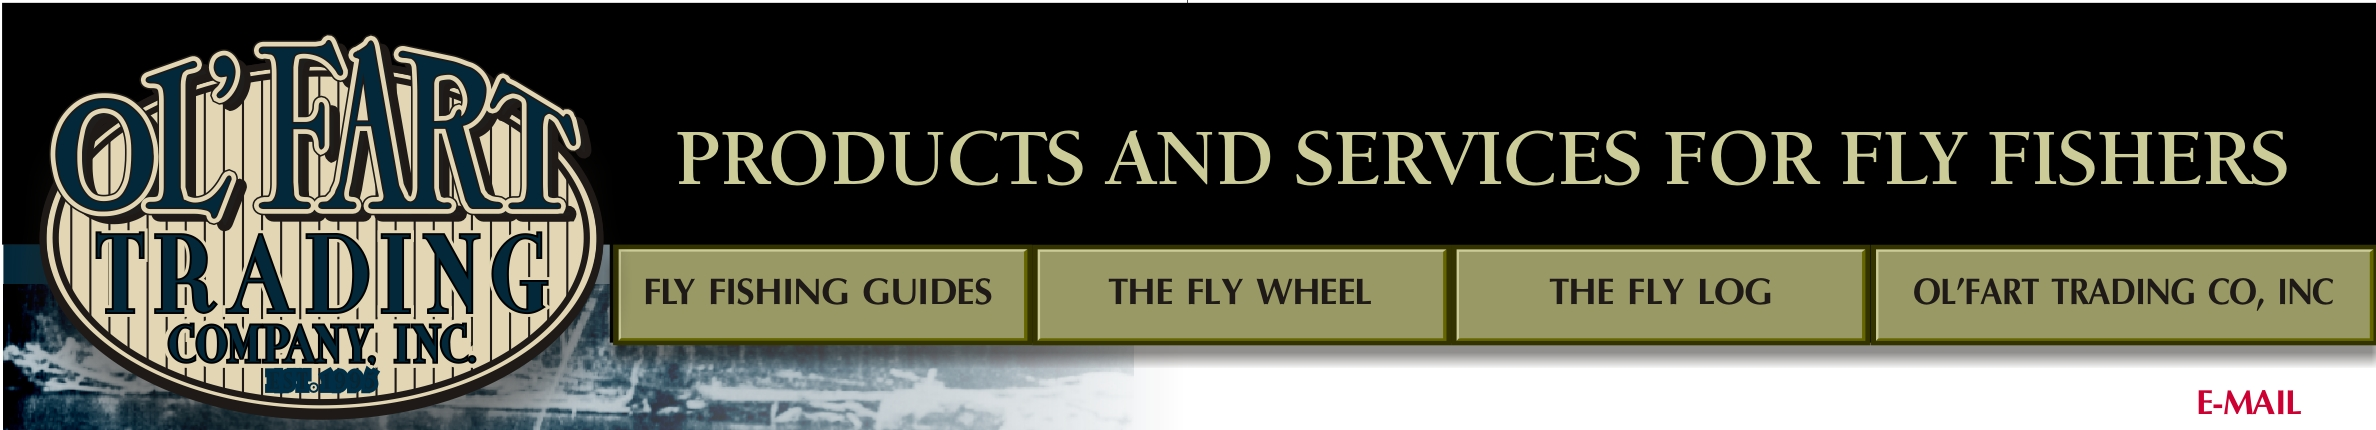 Ol'Fart Trading Company, Inc. provides products and services for fly fising